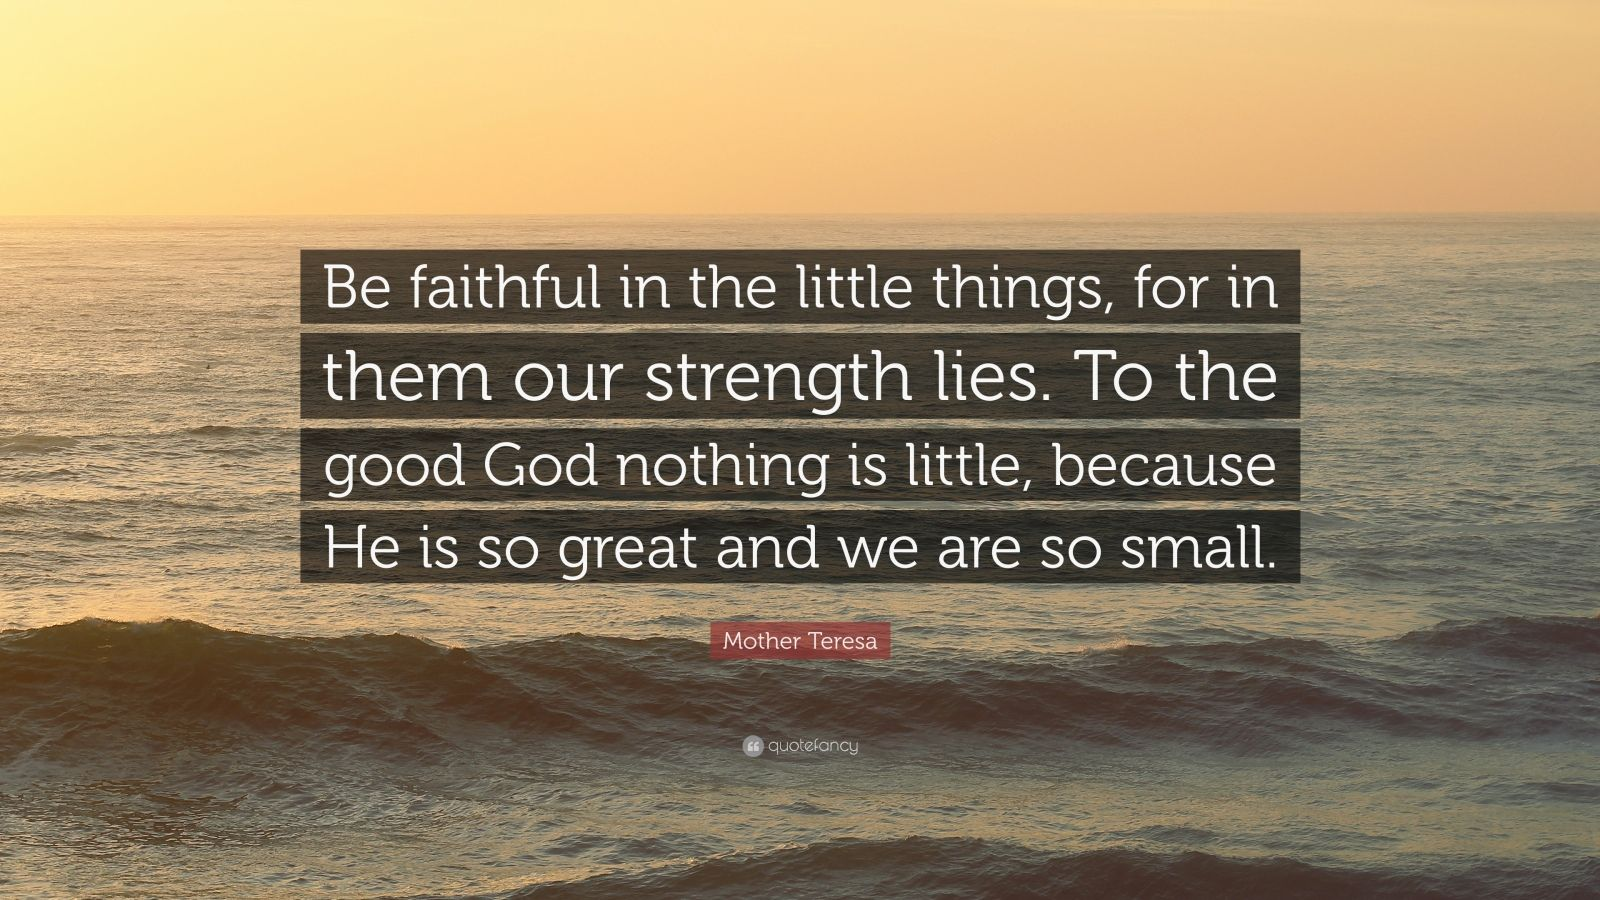 Mother Teresa Quote: Be faithful in the little things